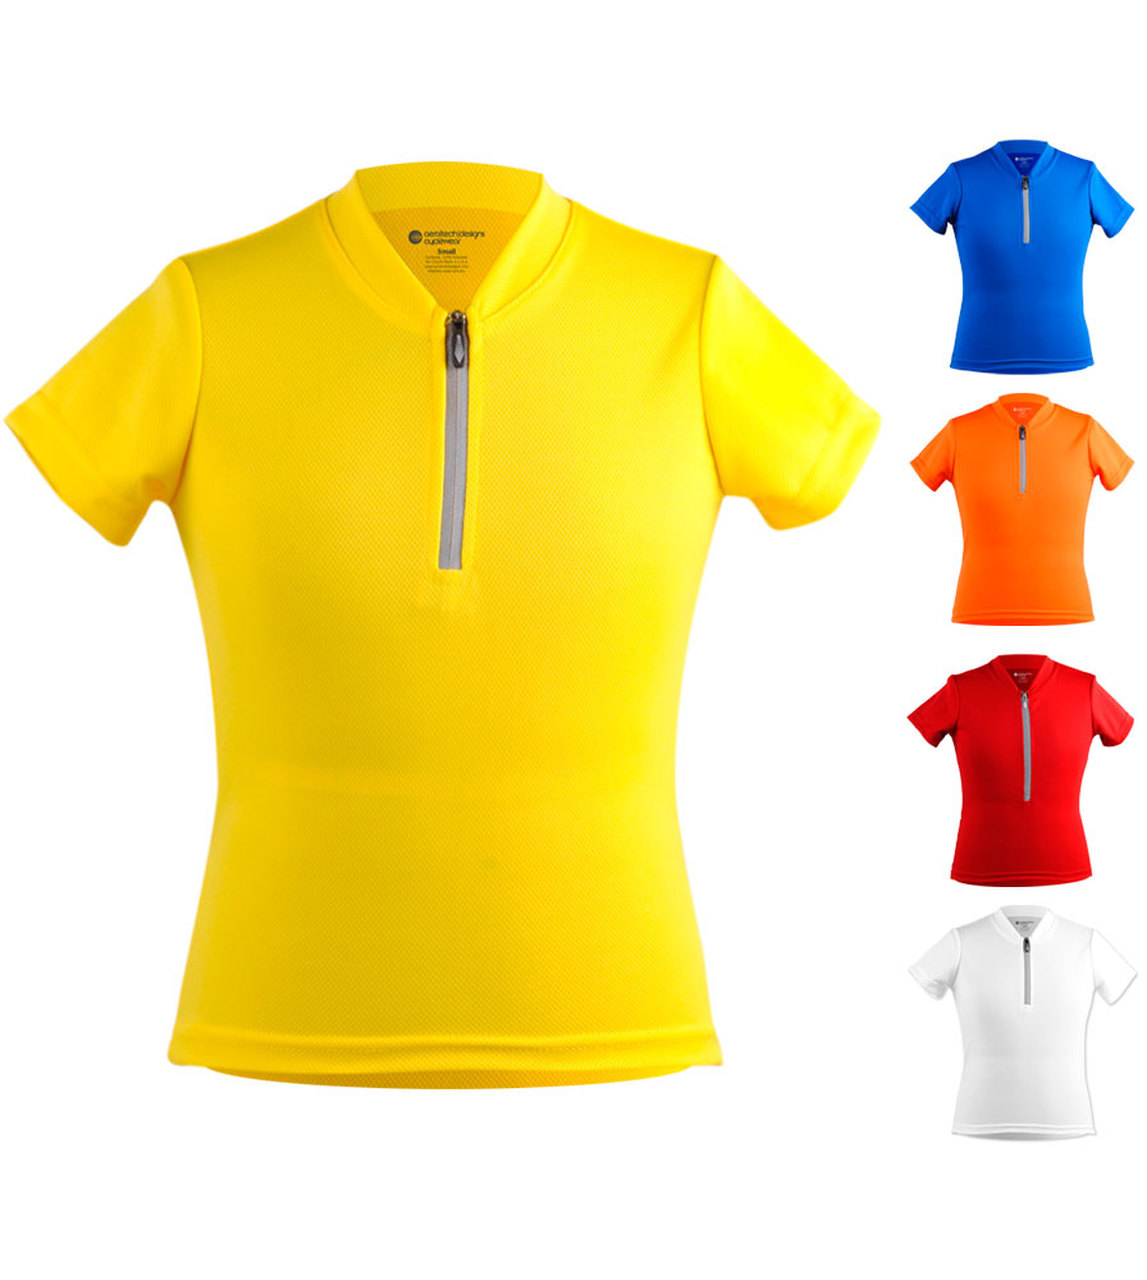 child-youth-biking-cycling-jersey-icon.jpg